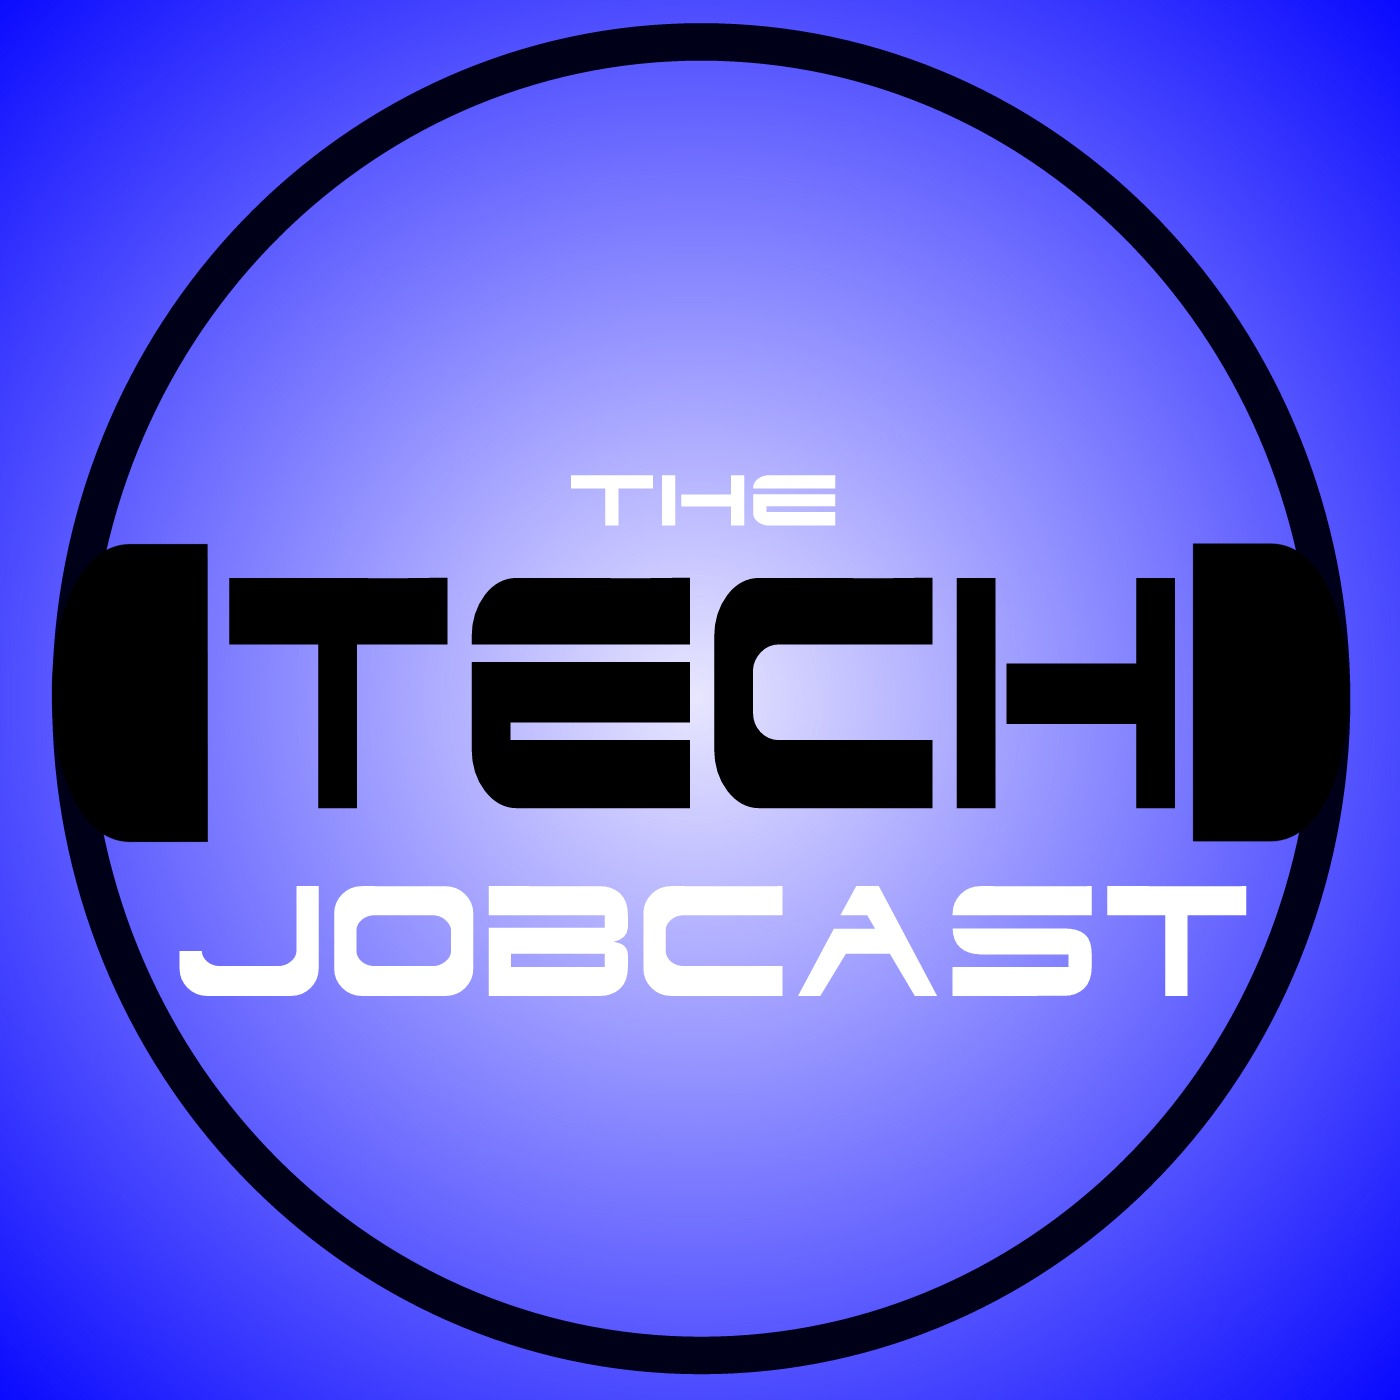 IT Job listings for the week of July 14, 2018